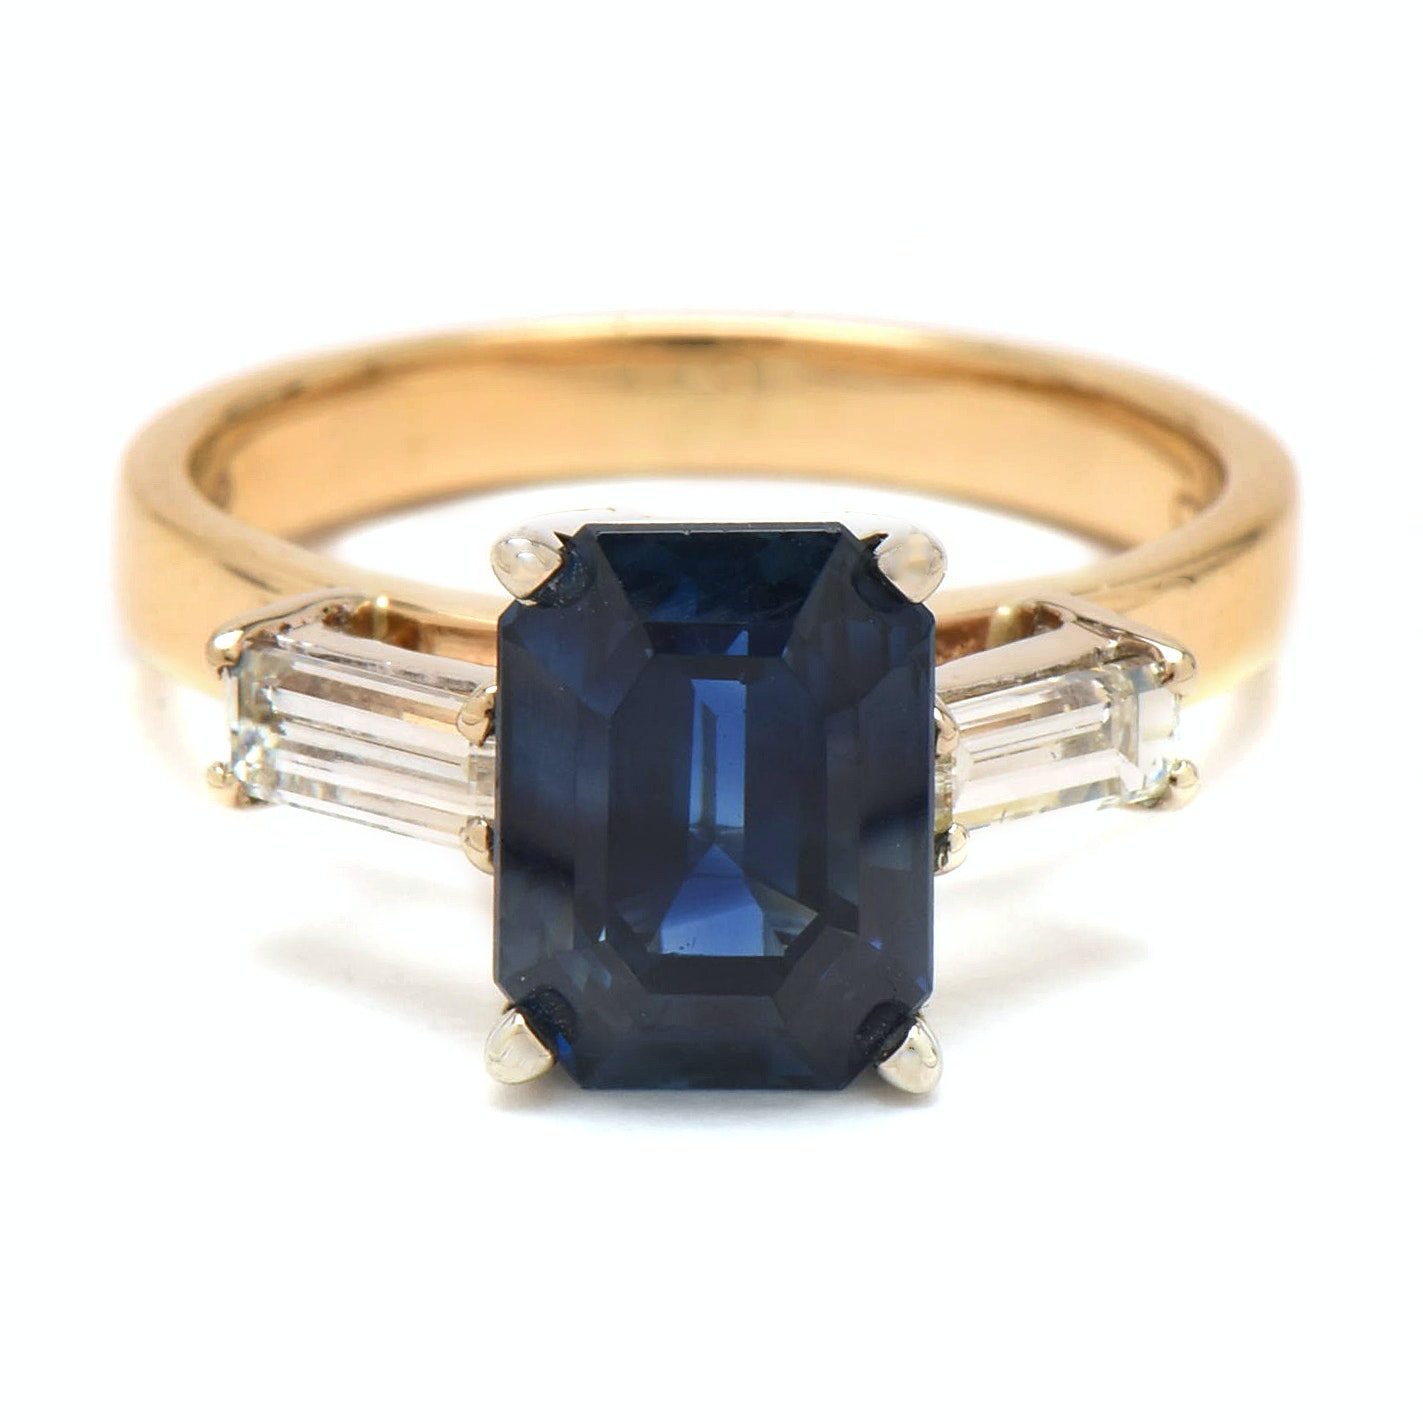 14K Yellow Gold 3.84 CT Sapphire and Diamond Ring with AGL Prestige Report